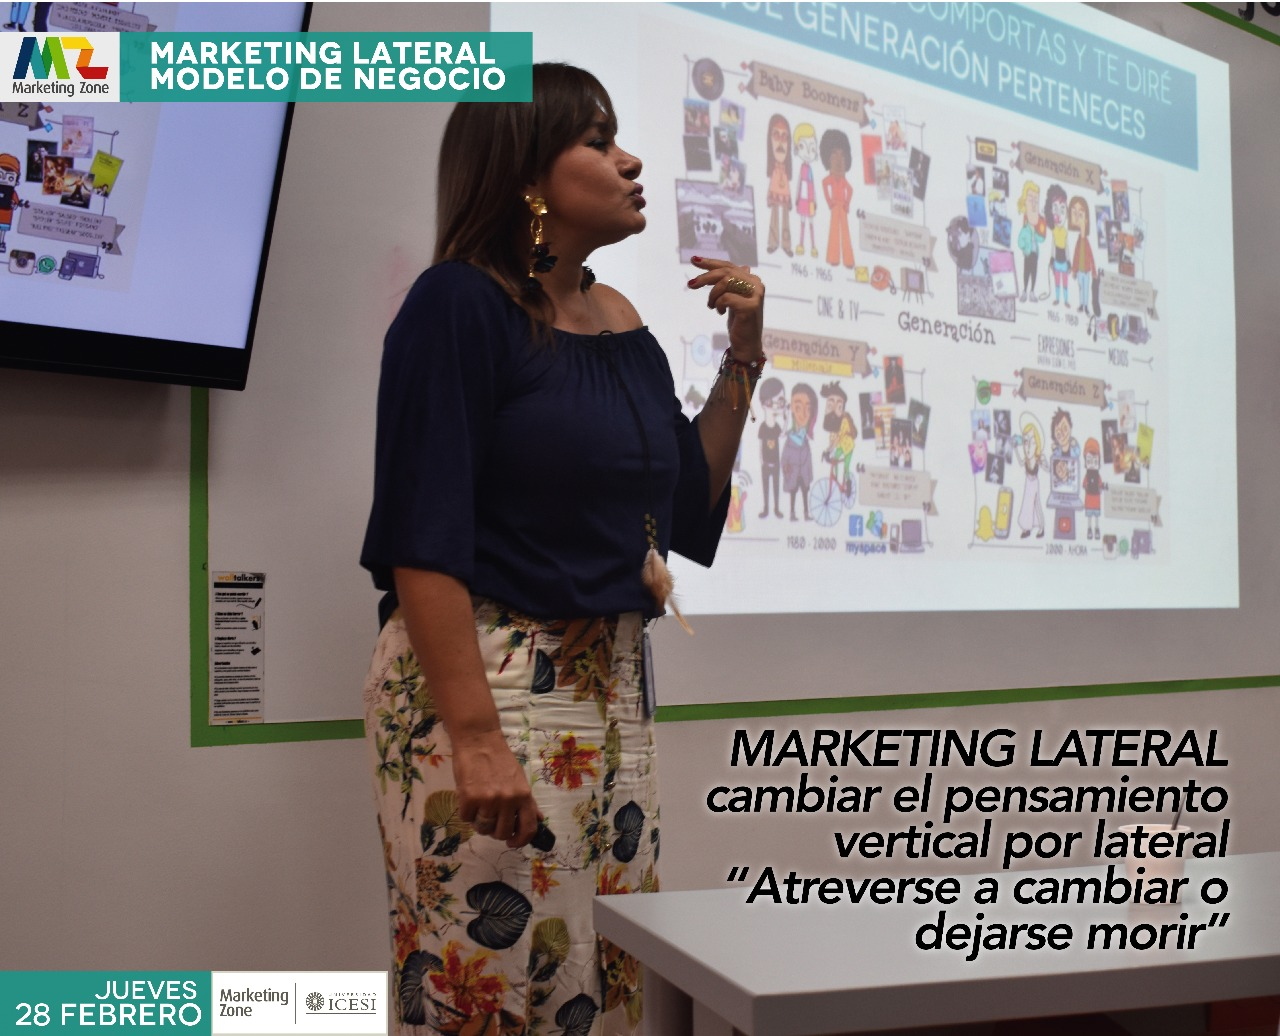 Marketing Lateral como modelo de negocio